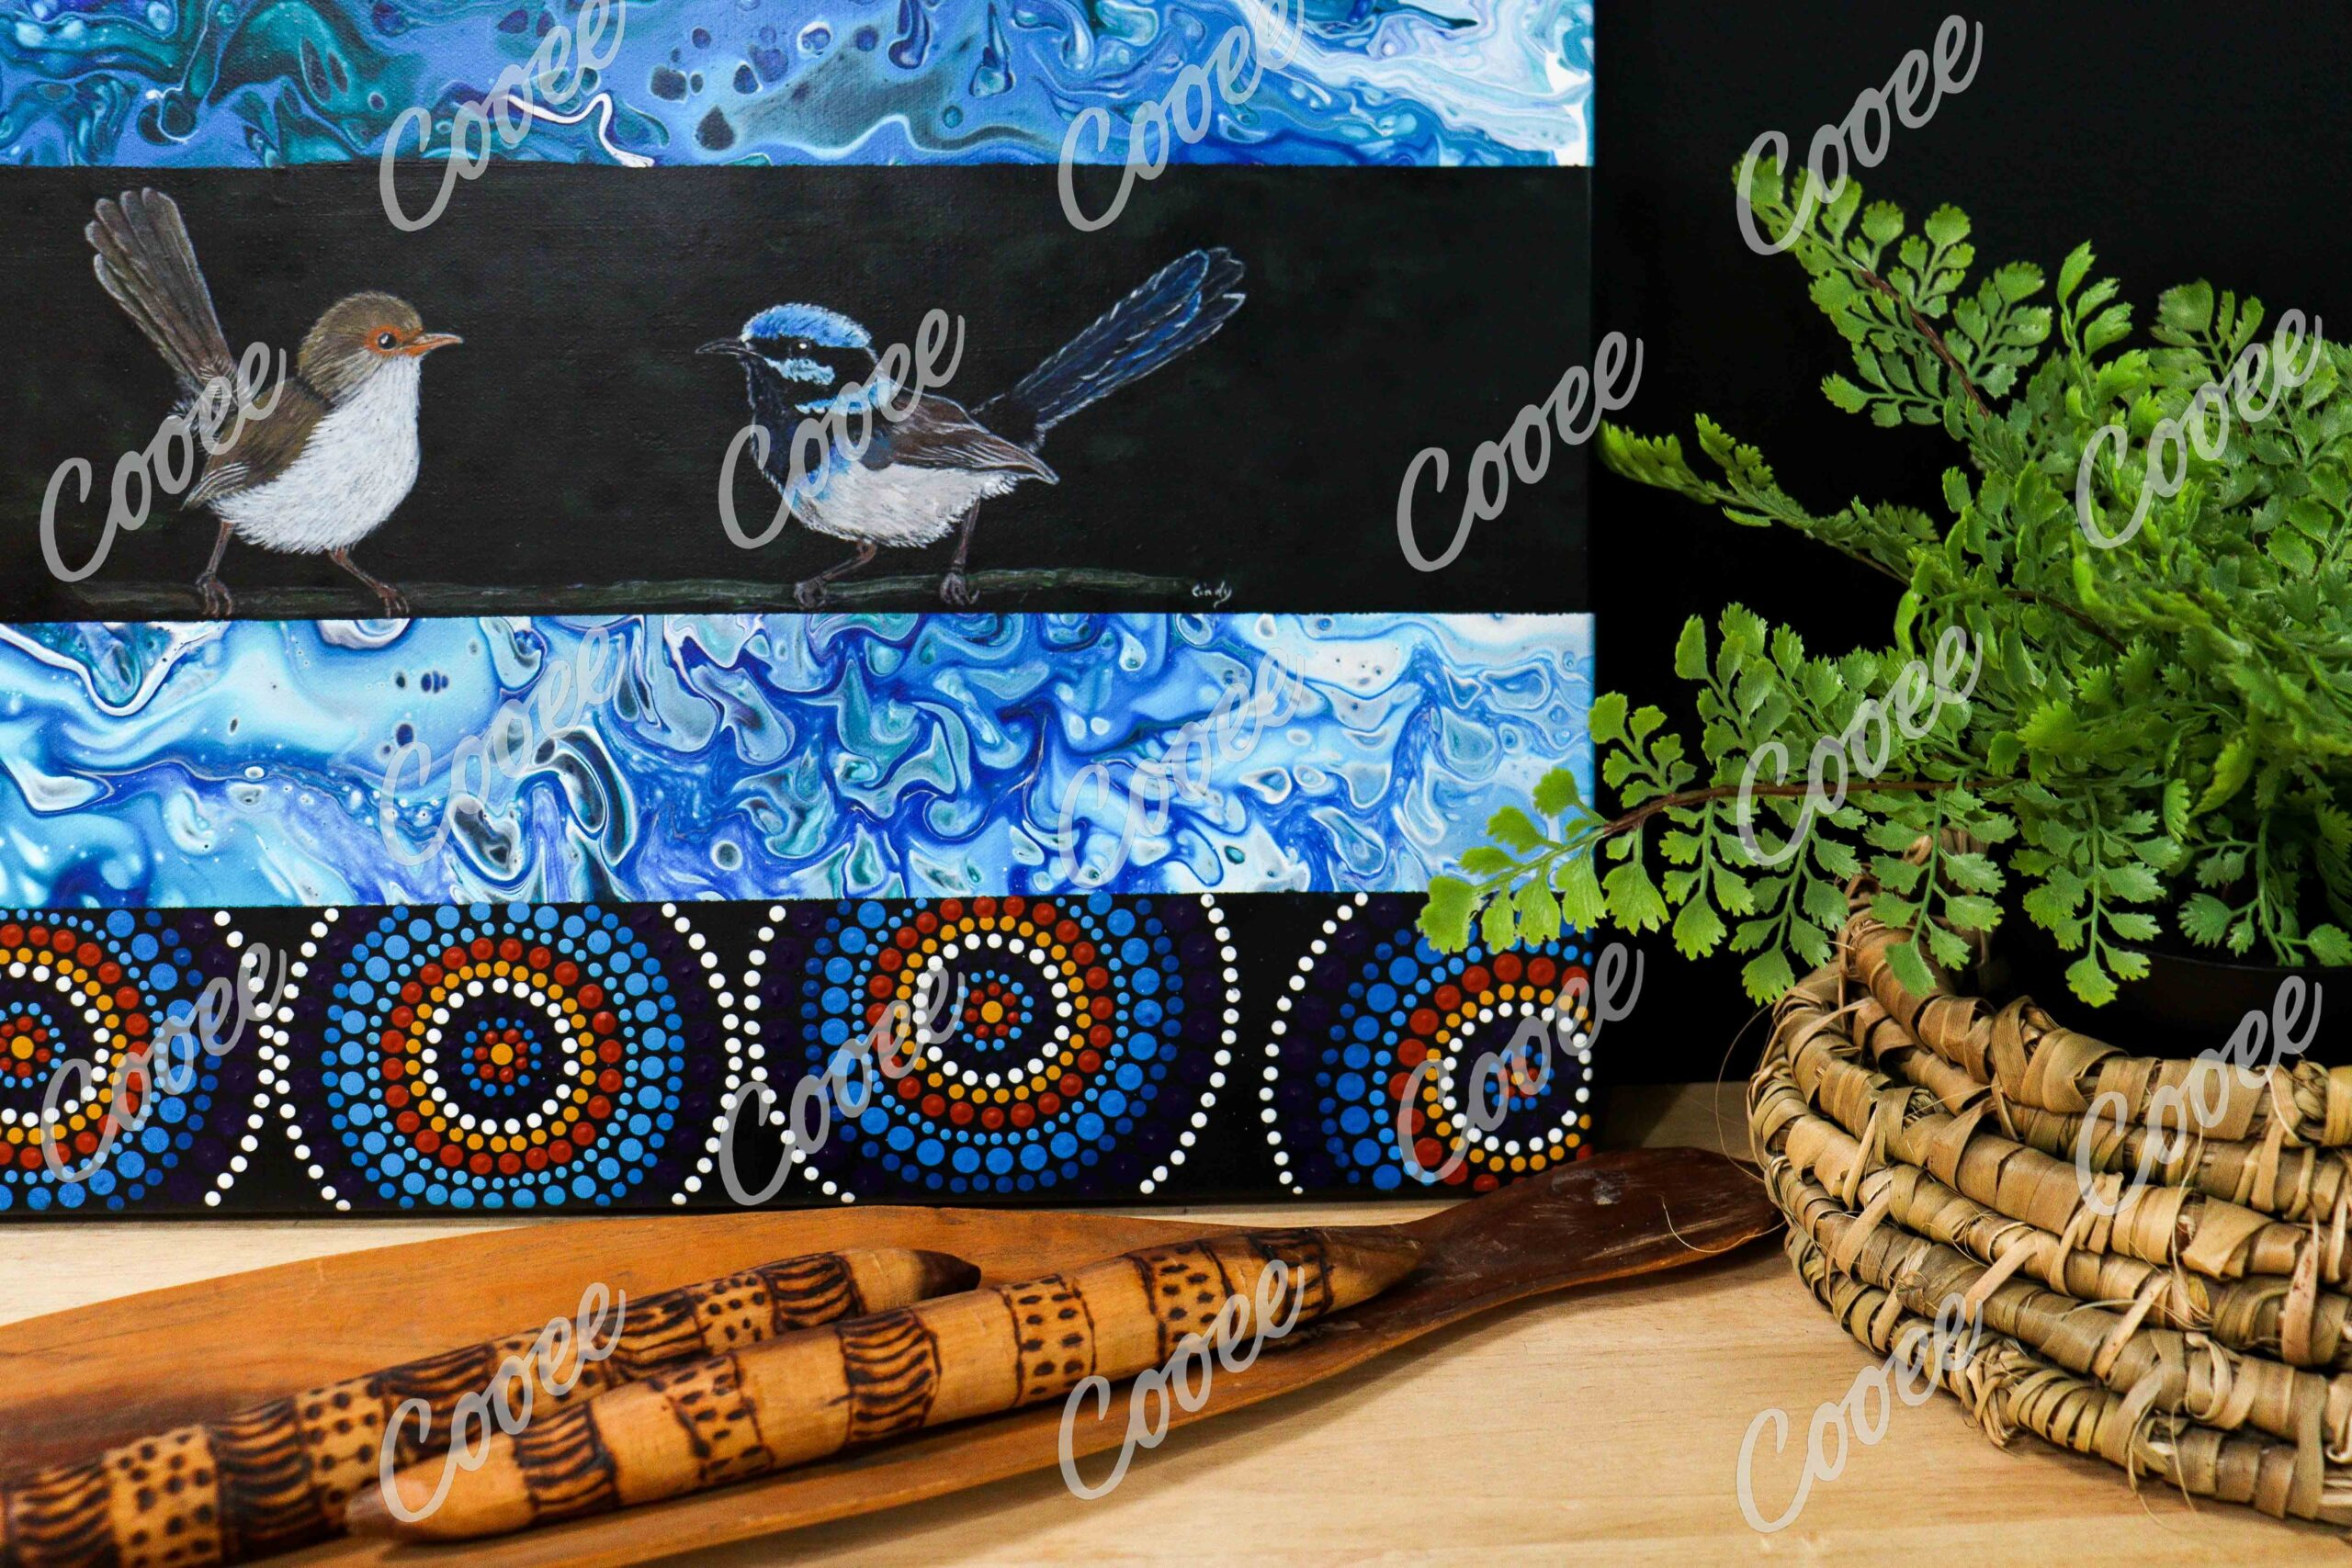 Cooee-Cafe-Original-Indigenous-Painting8